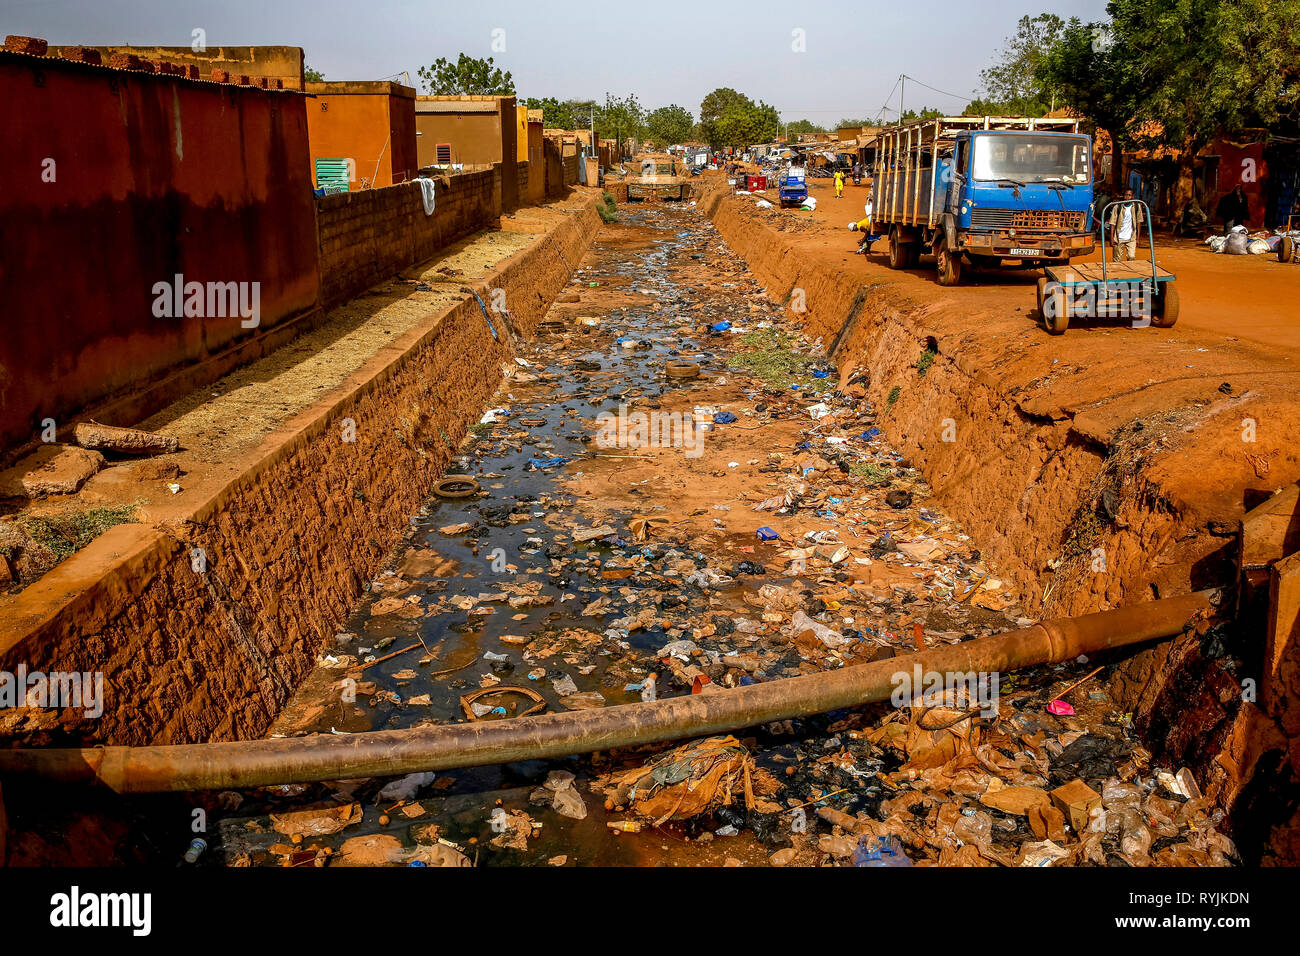 Littered open-air sewer in Ouahigouya, Burkina Faso. - Stock Image